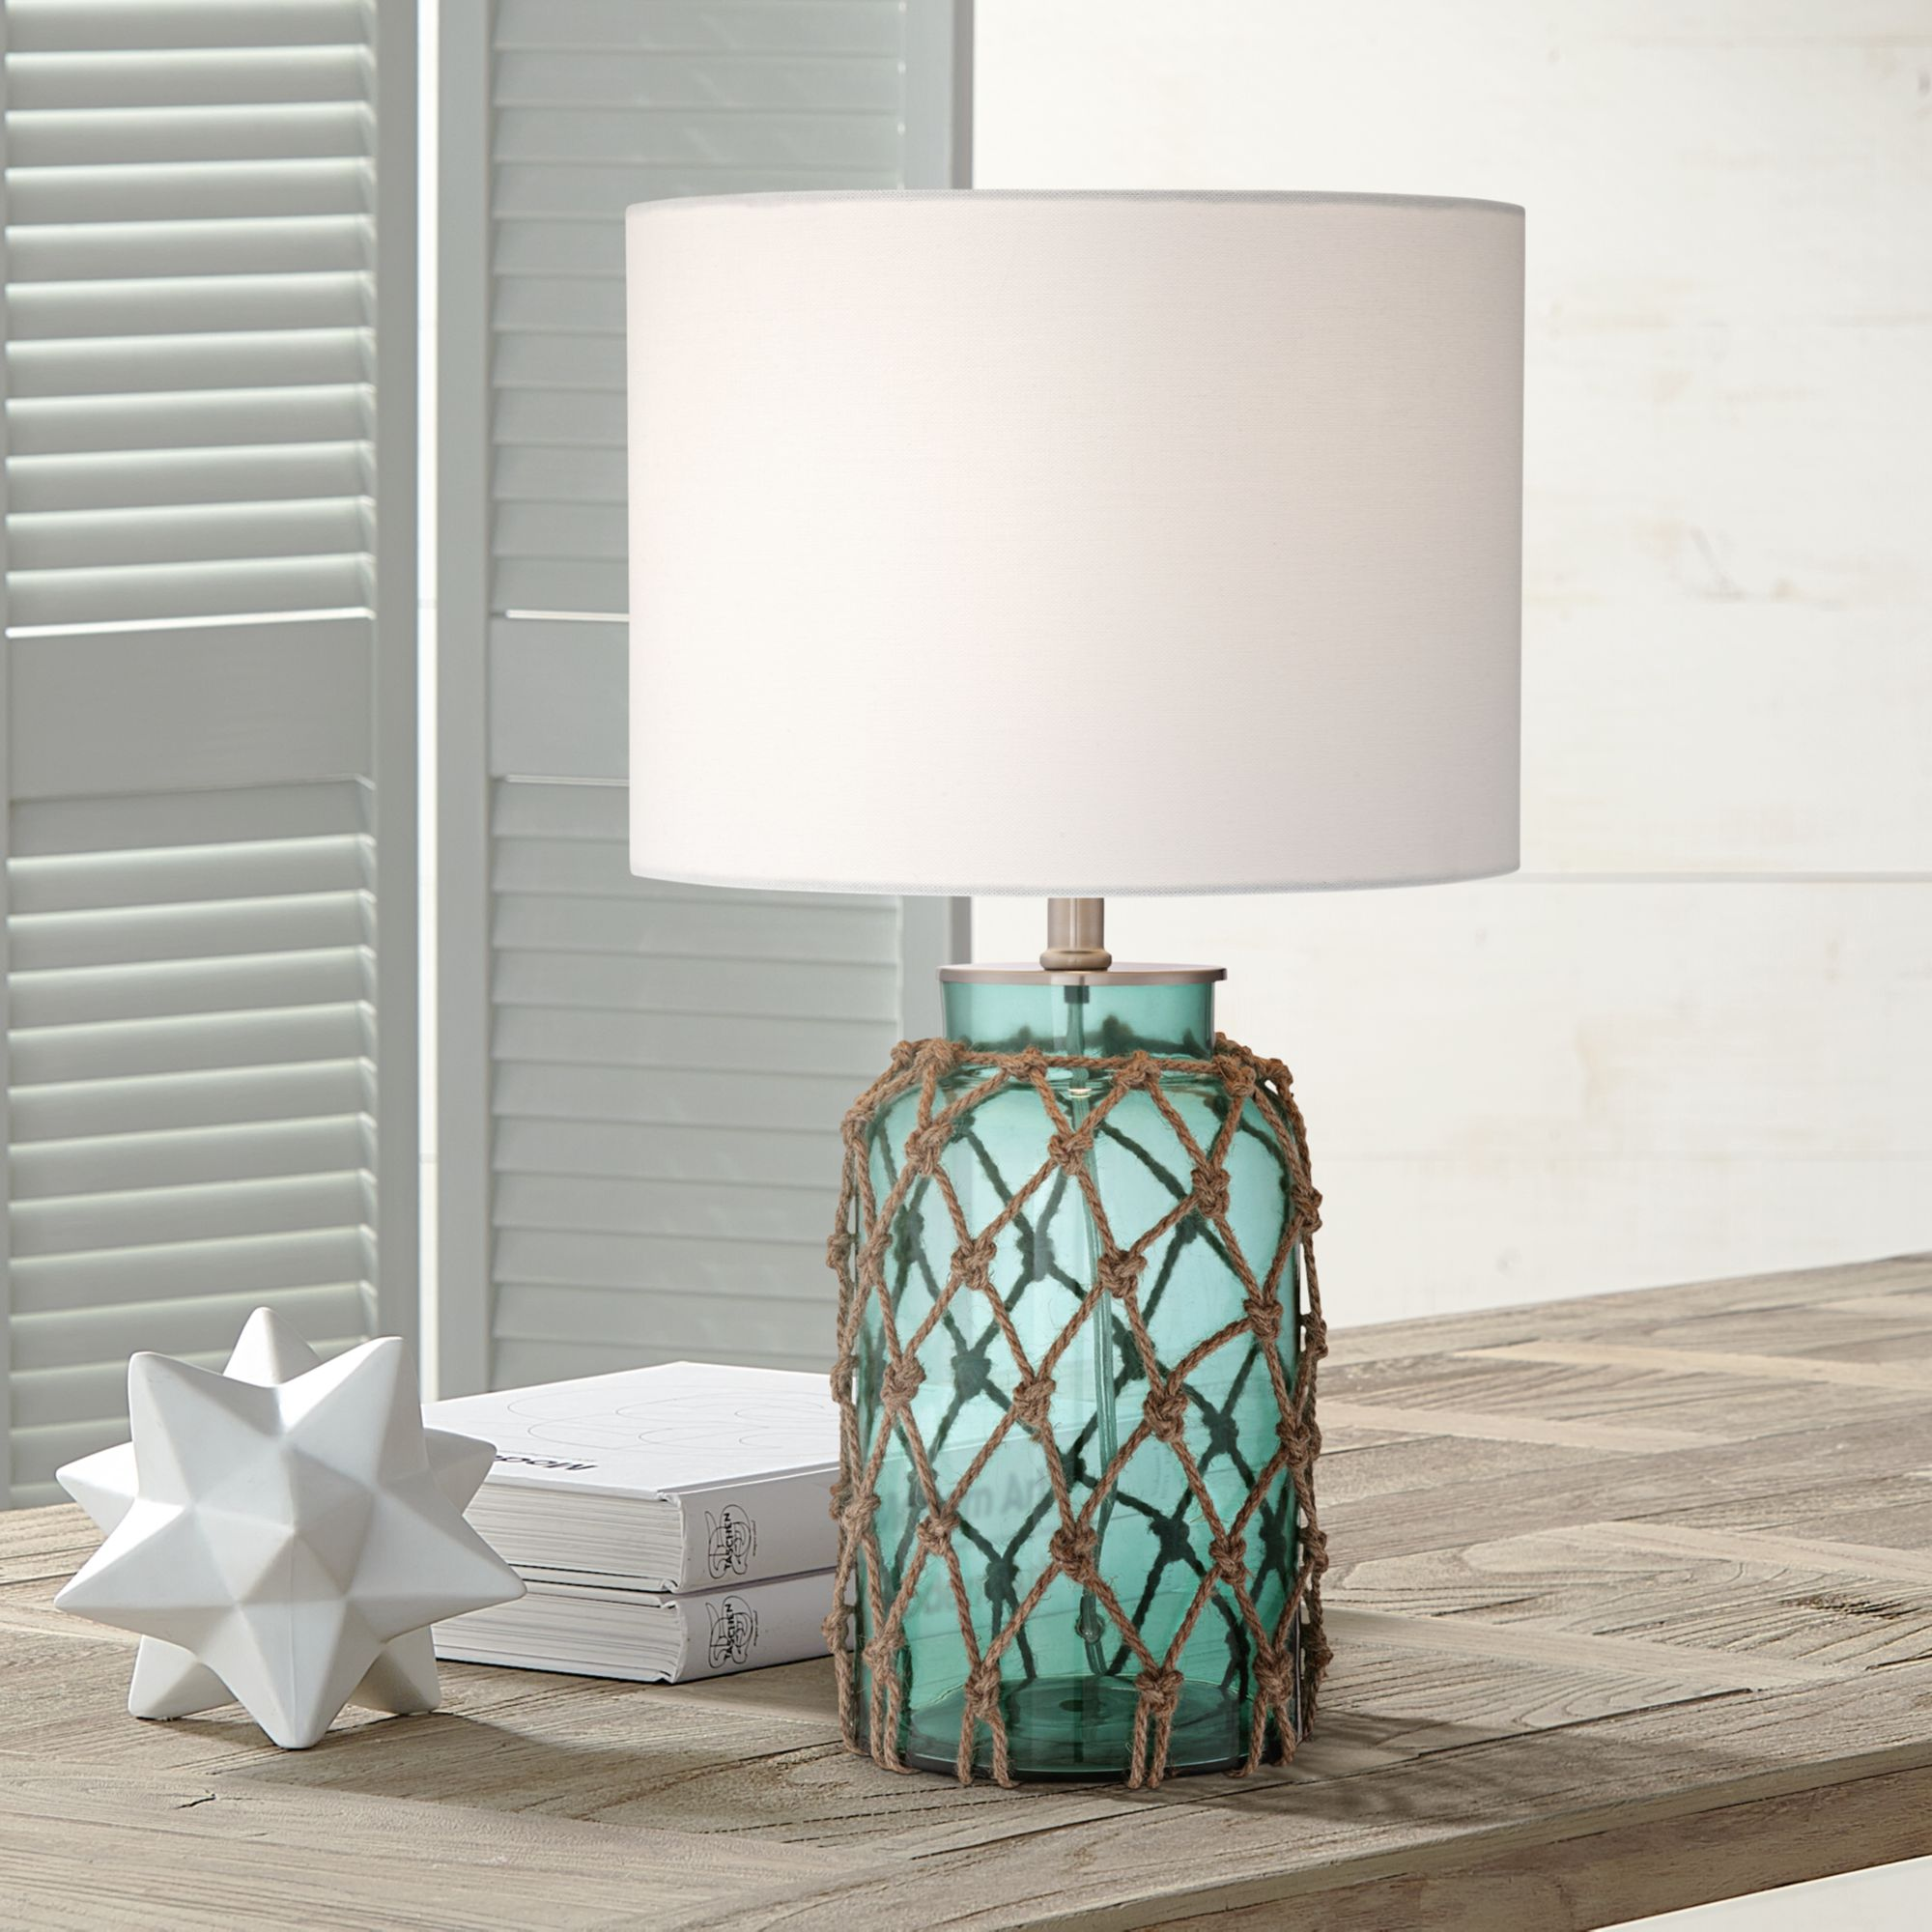 lighting nautical accent table lamp coastal blue green glass rope off white drum shade for living room family bedroom teal decor farm kitchen sideboards and buffets iron outdoor